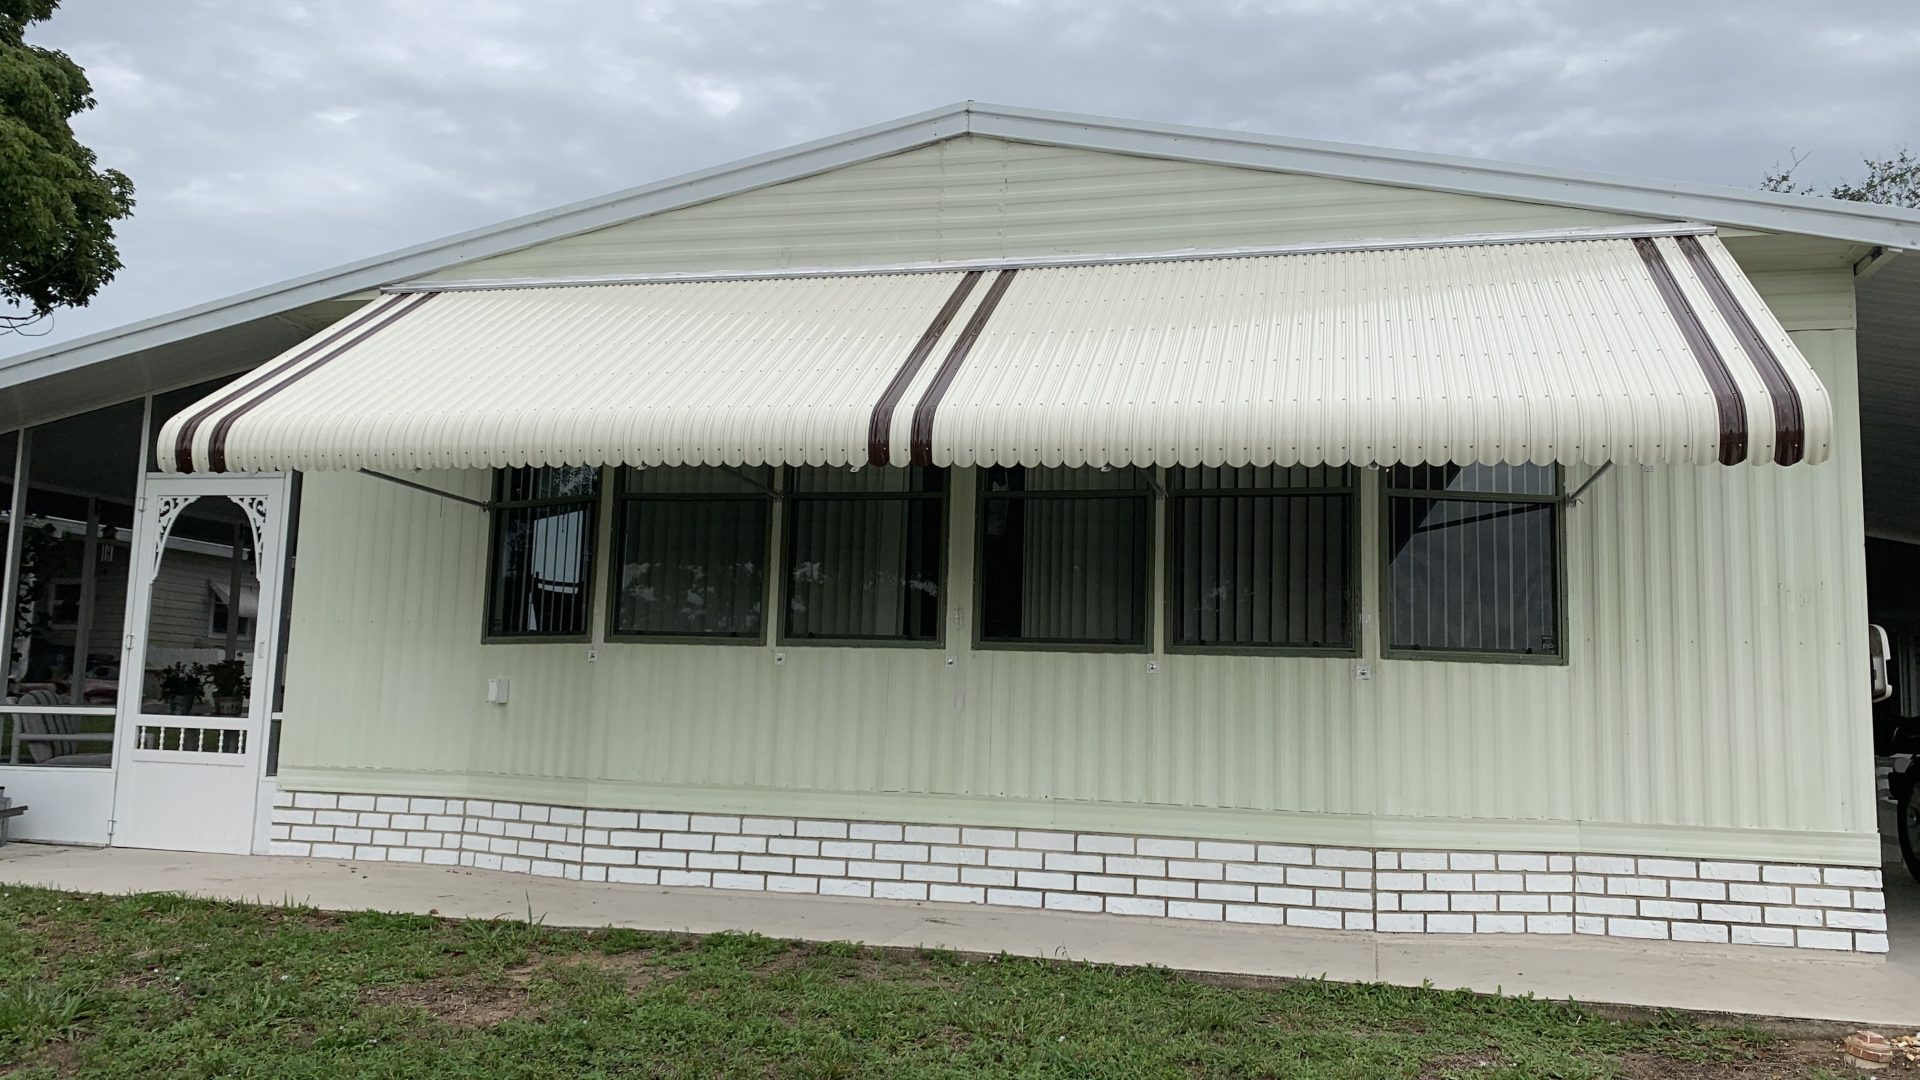 custom 20 foot awning complete